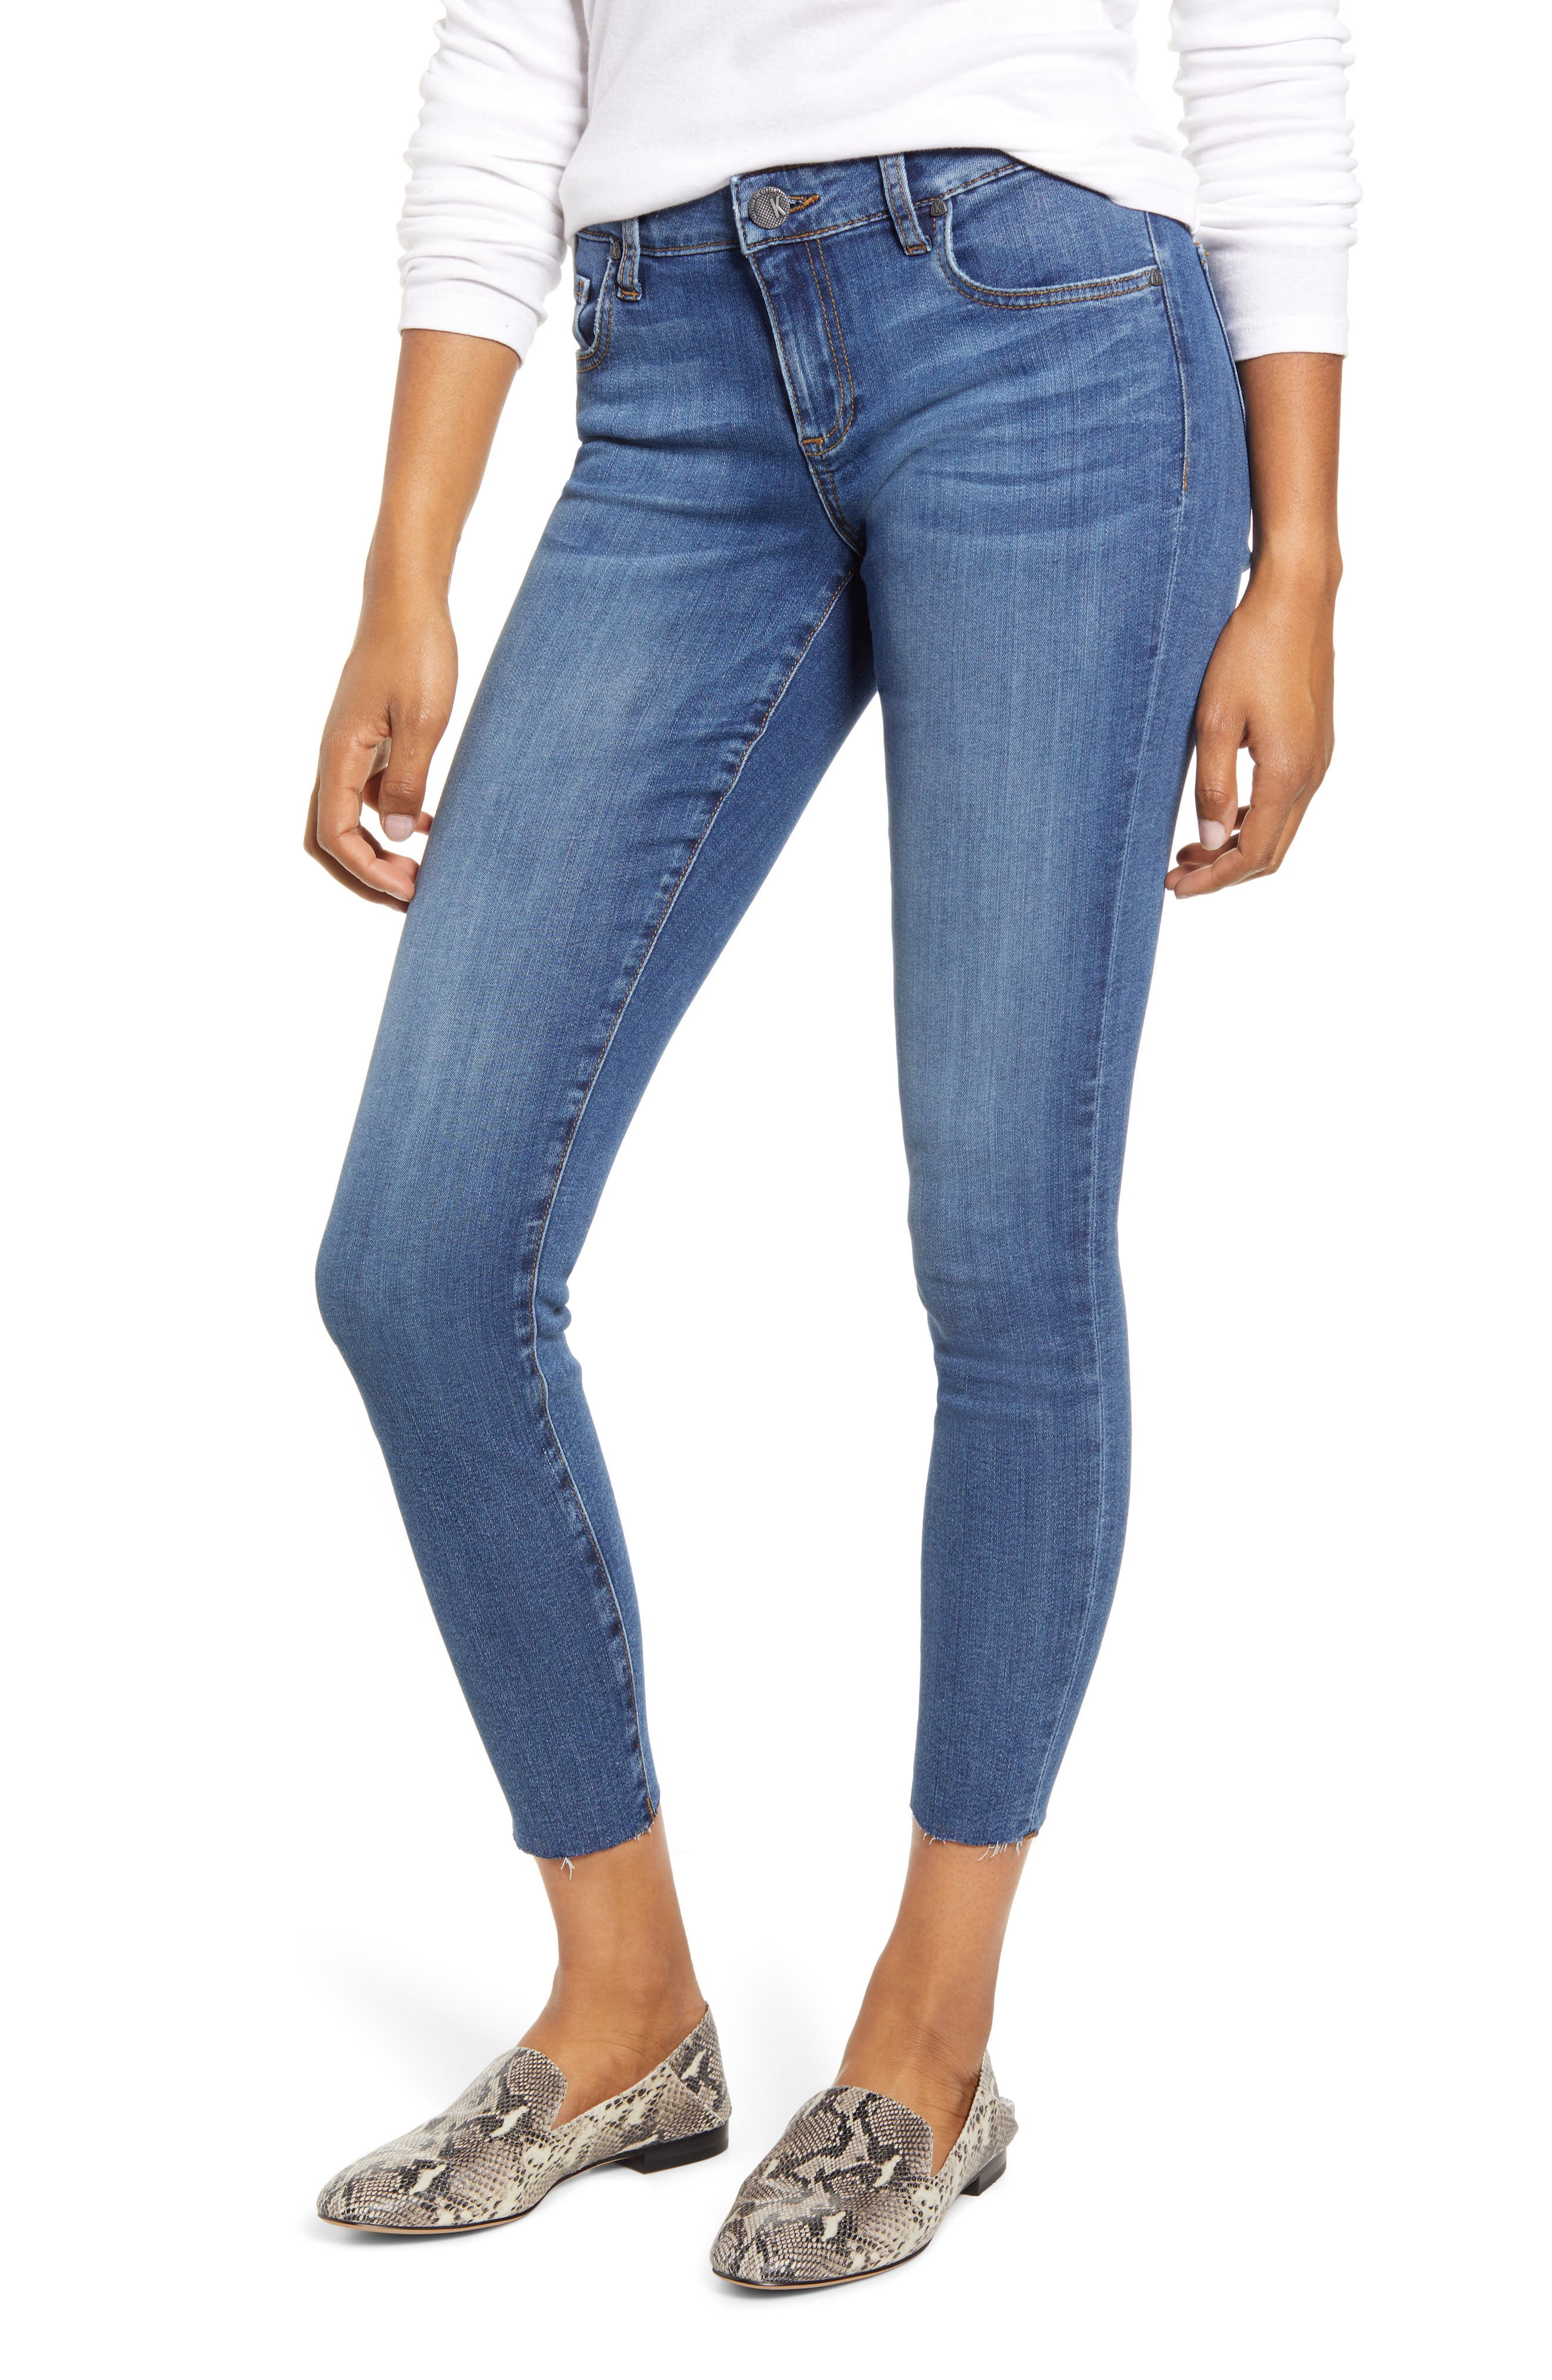 KUT from the Kloth Donna Ankle Skinny Jeans (Collaborate) (Regular & Petite)